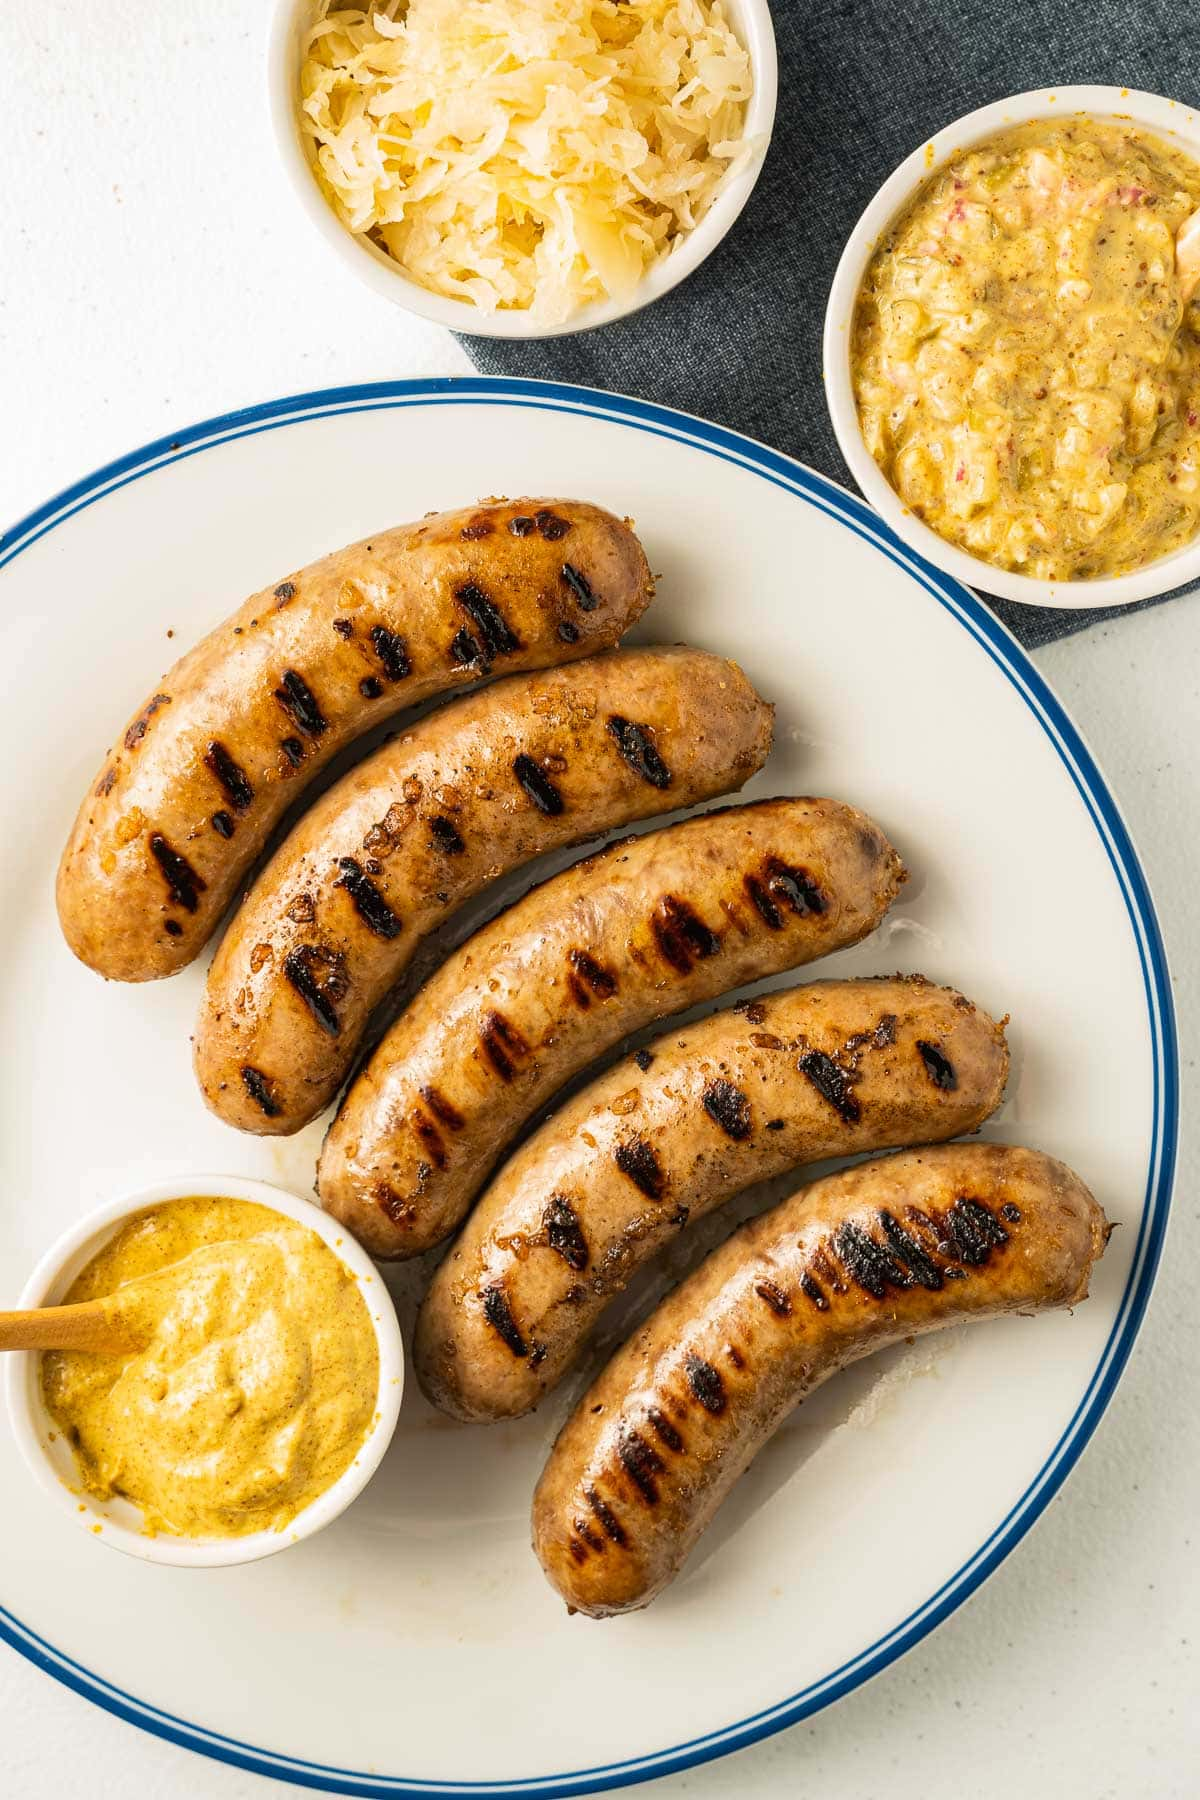 grilled bratwurst on plate with mustard